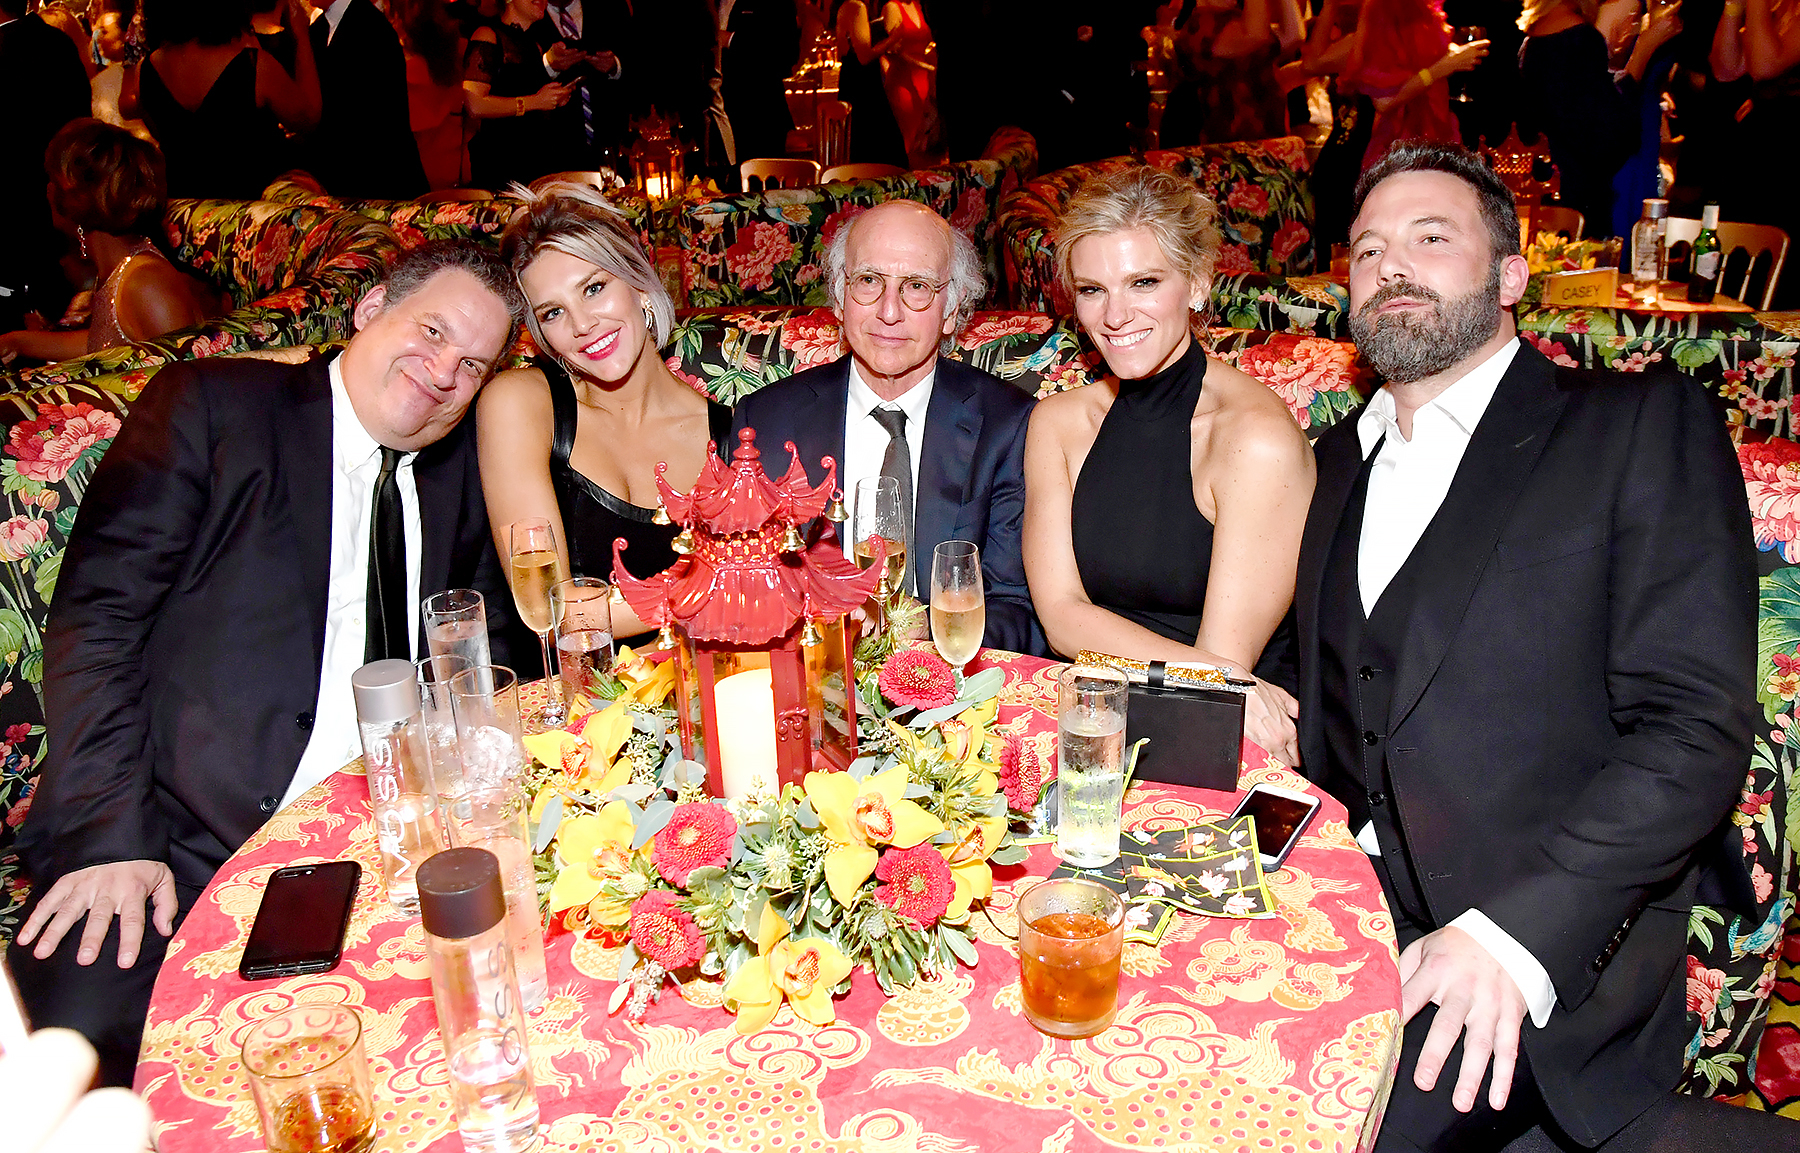 Jeff Garlin, Charissa Thompson, Larry David, Lindsay Shookus and Ben Affleck attend the HBO's Official 2017 Emmy After Party at The Plaza at the Pacific Design Center on September 17, 2017 in Los Angeles, California.